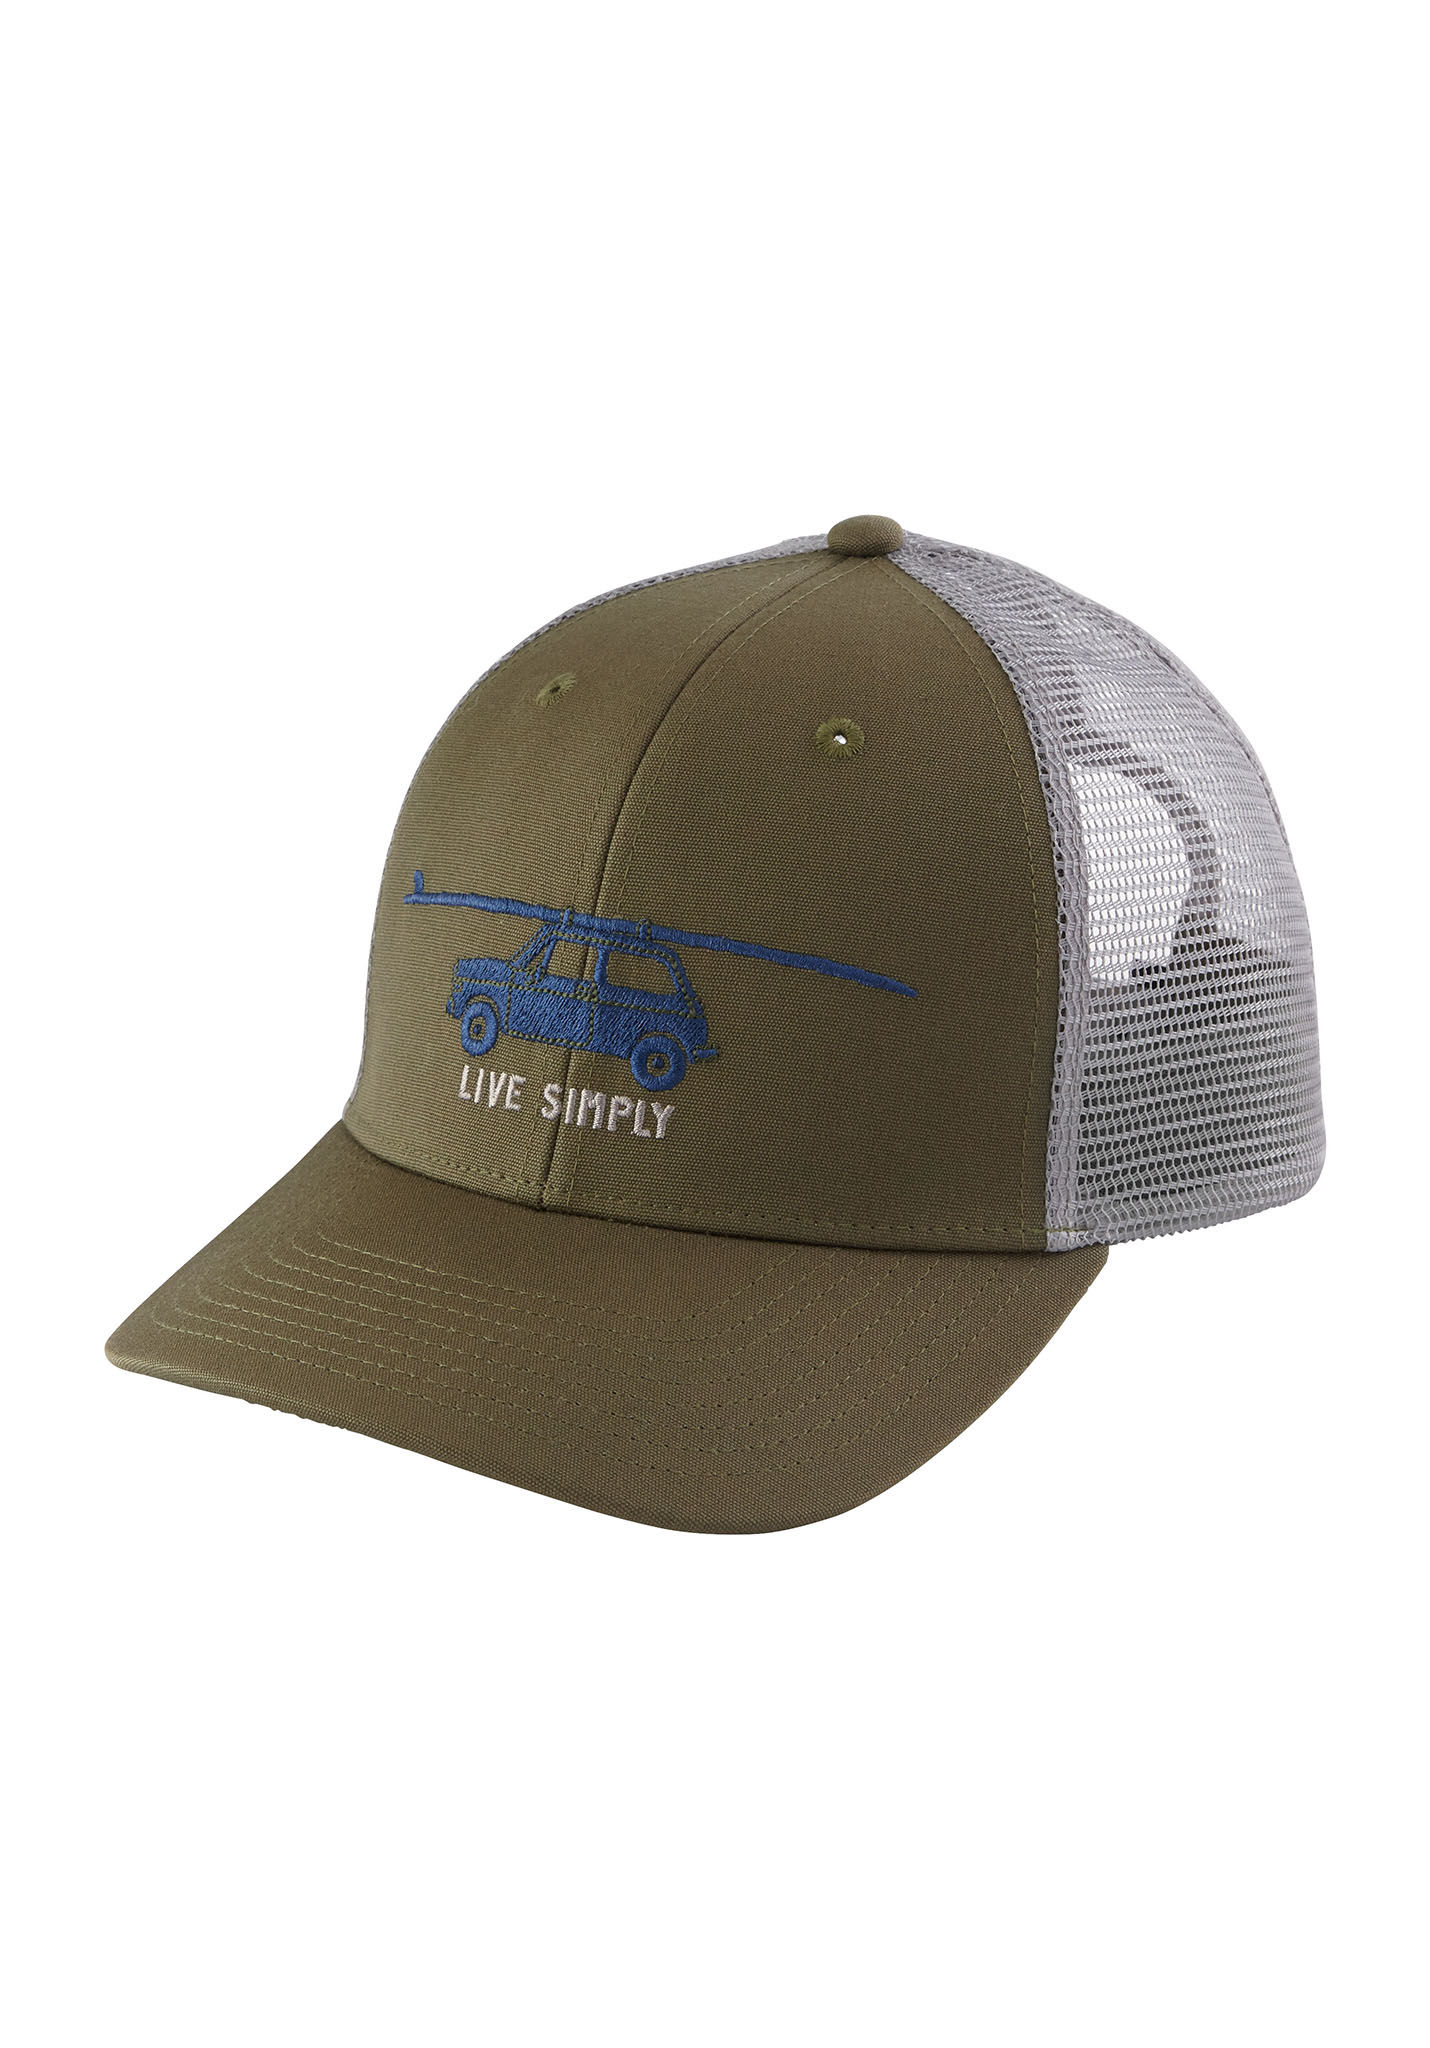 PATAGONIA Live Simply Glider - Trucker Cap - Green - Planet Sports 2bb201c1937